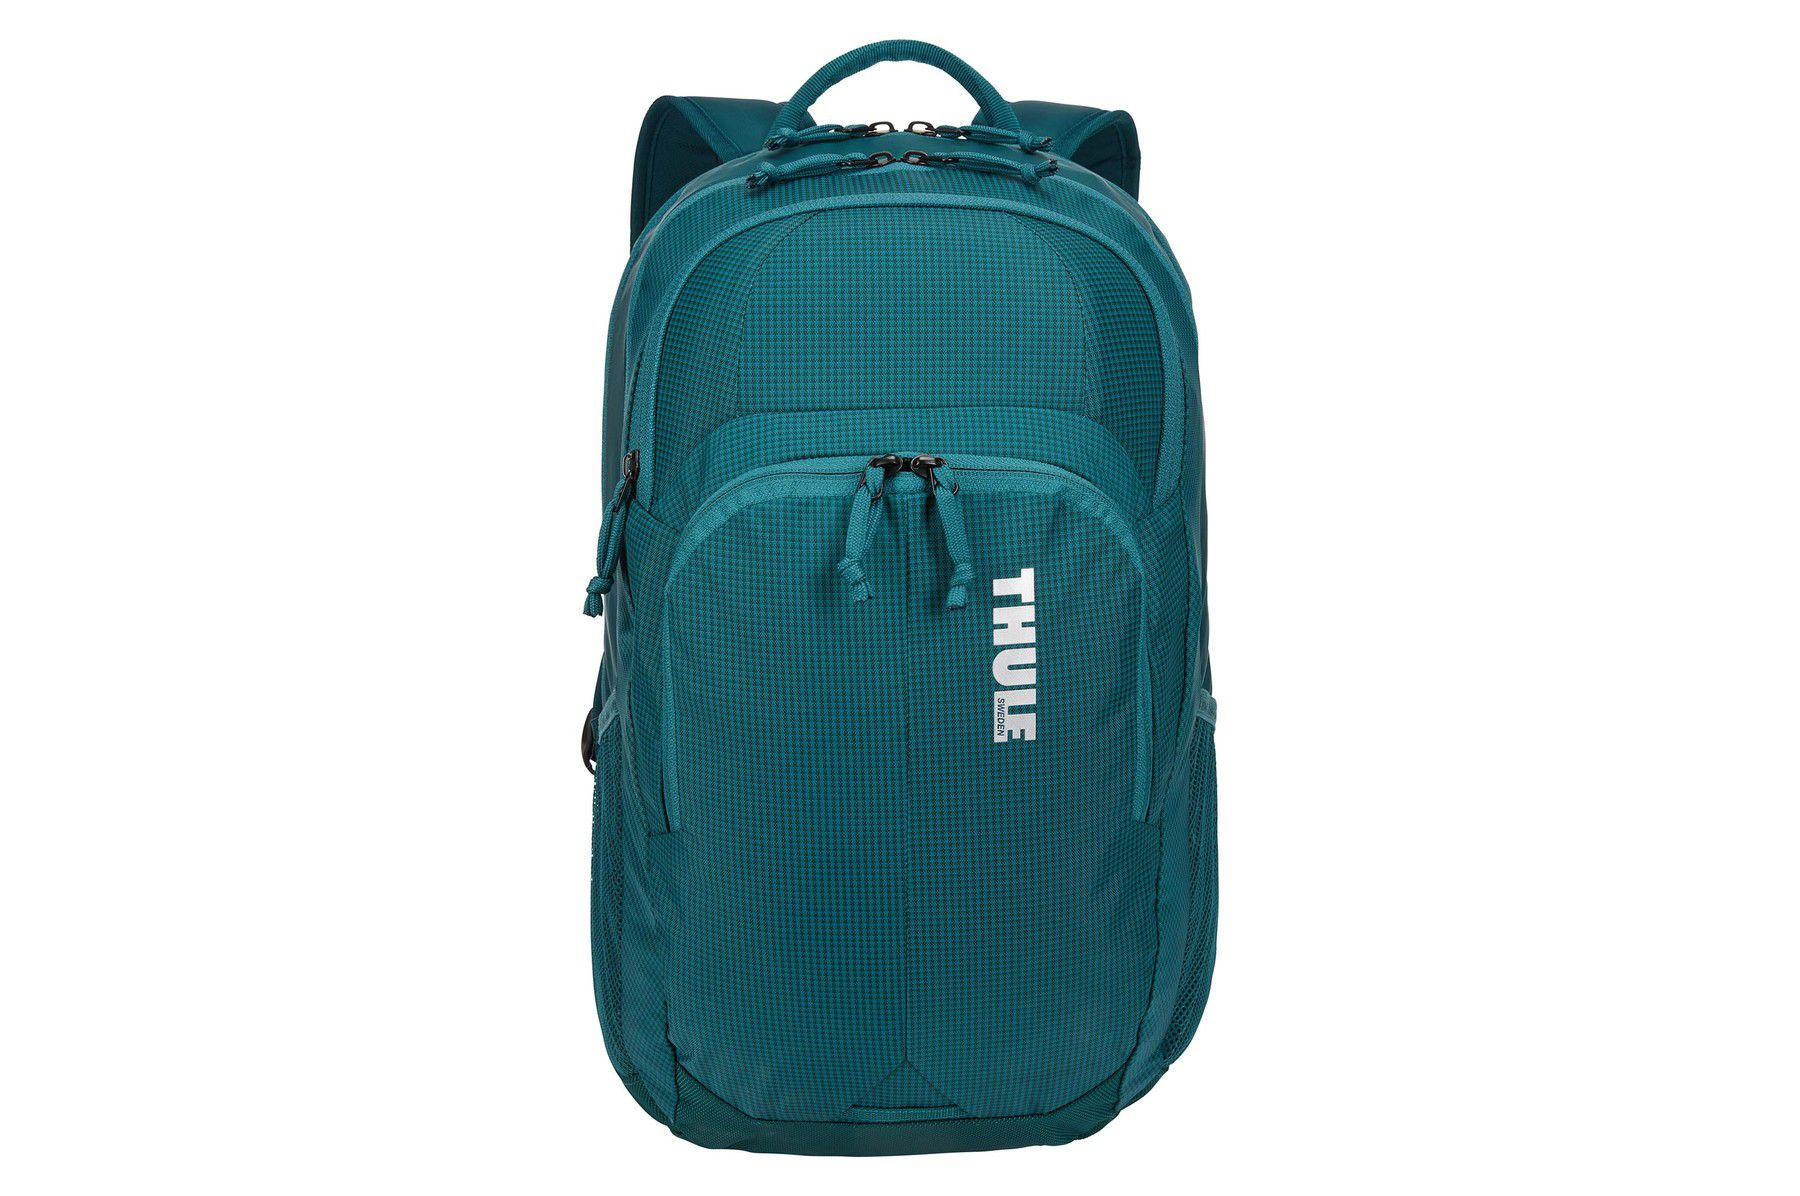 MOCHILA CHRONICAL 28L - DEEP TEAL CAMO - THULE